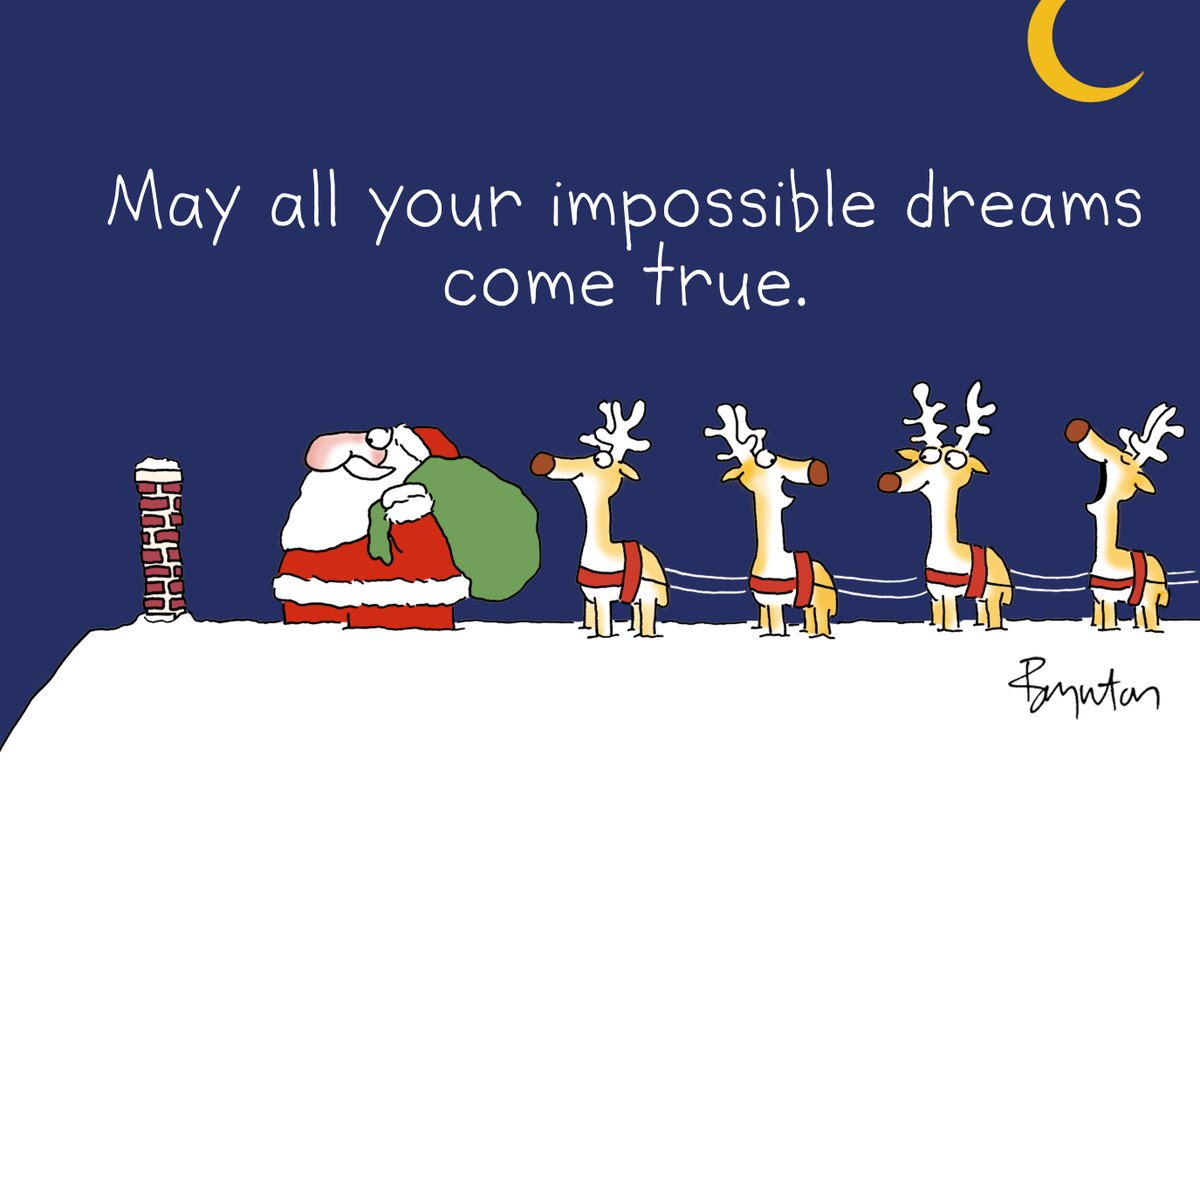 A wish for you on Christmas Eve. #ChristmasEve #optimism